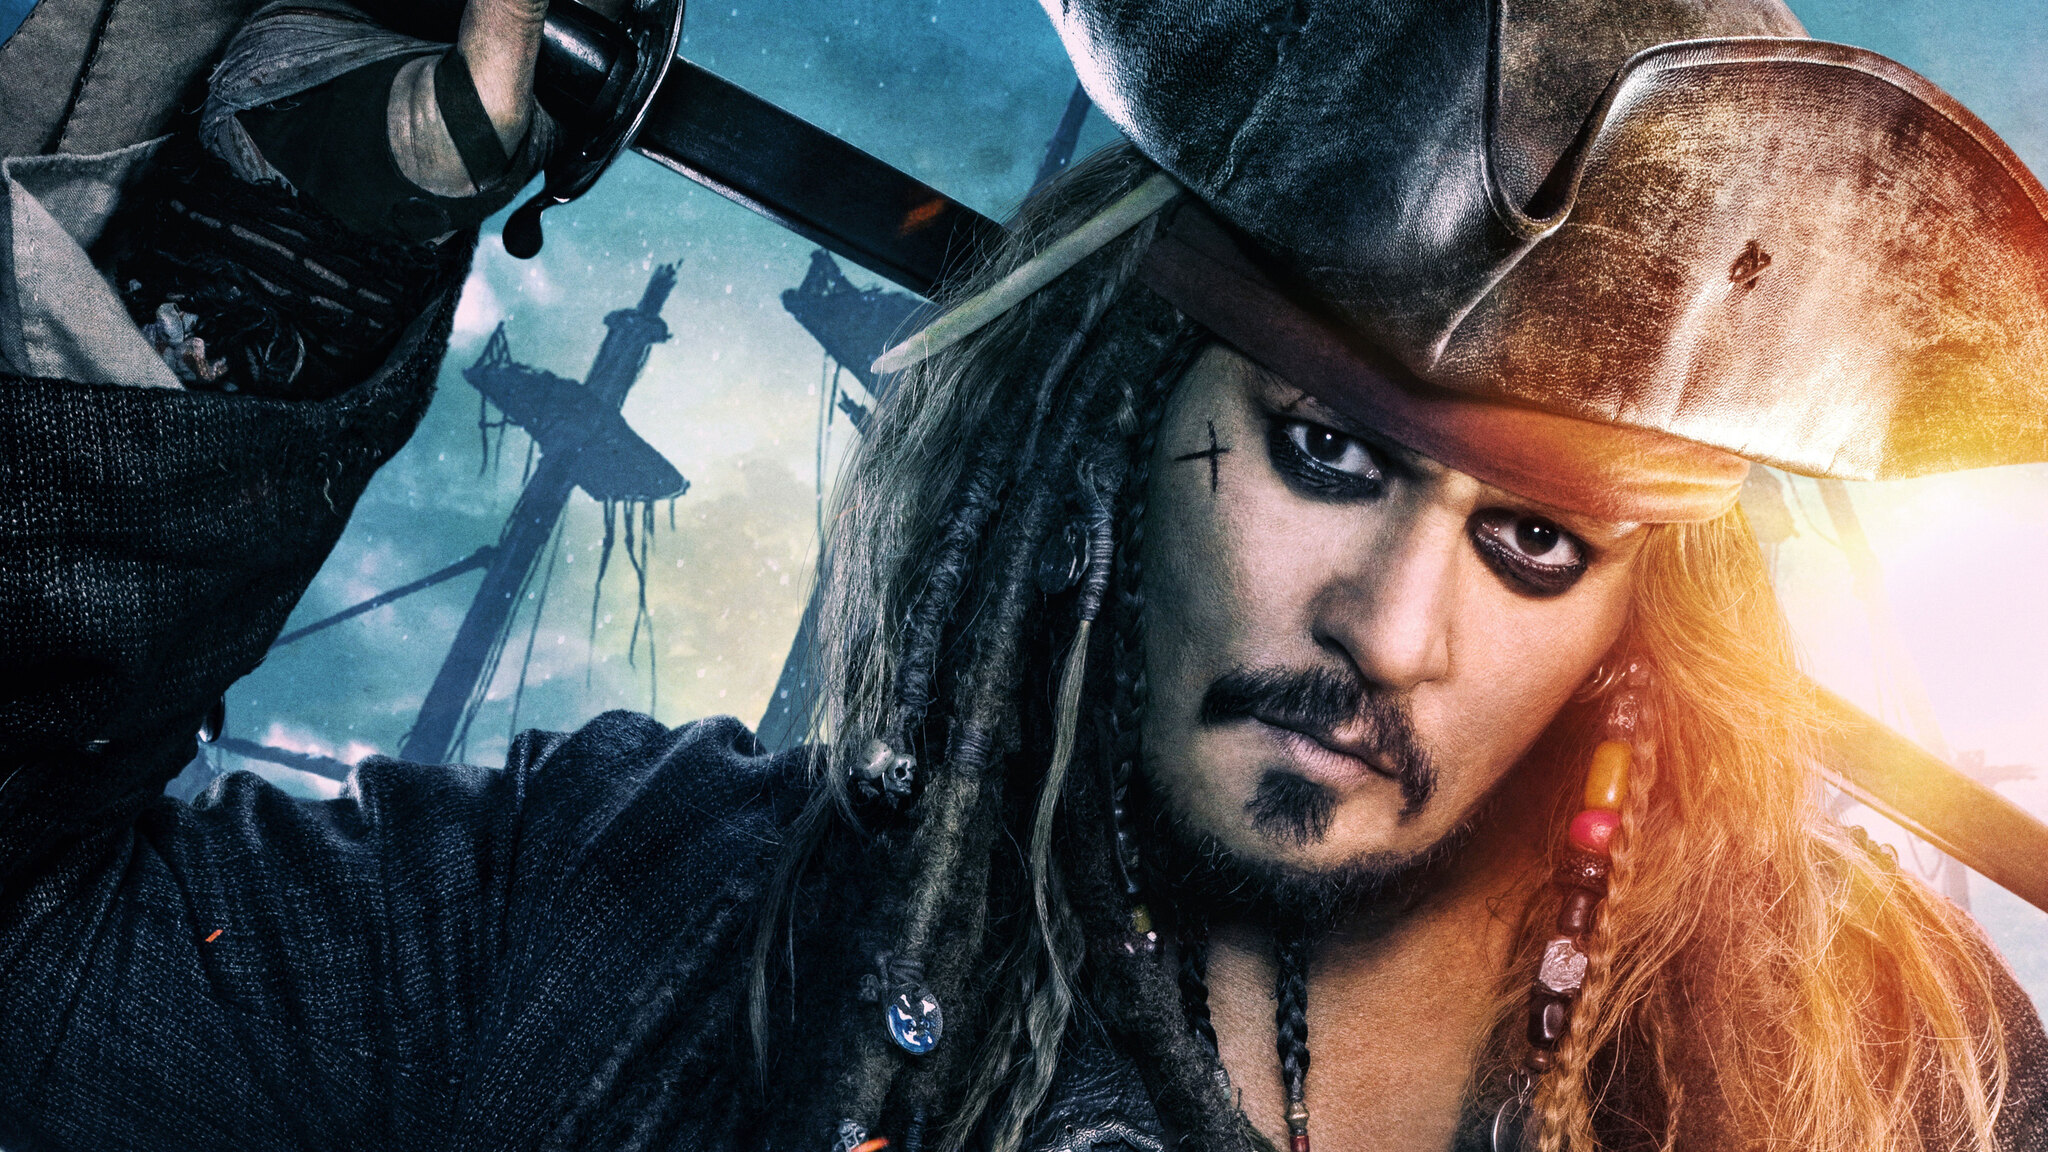 2048x1152 Jack Sparrow In Pirates Of The Caribbean Dead Men Tell No